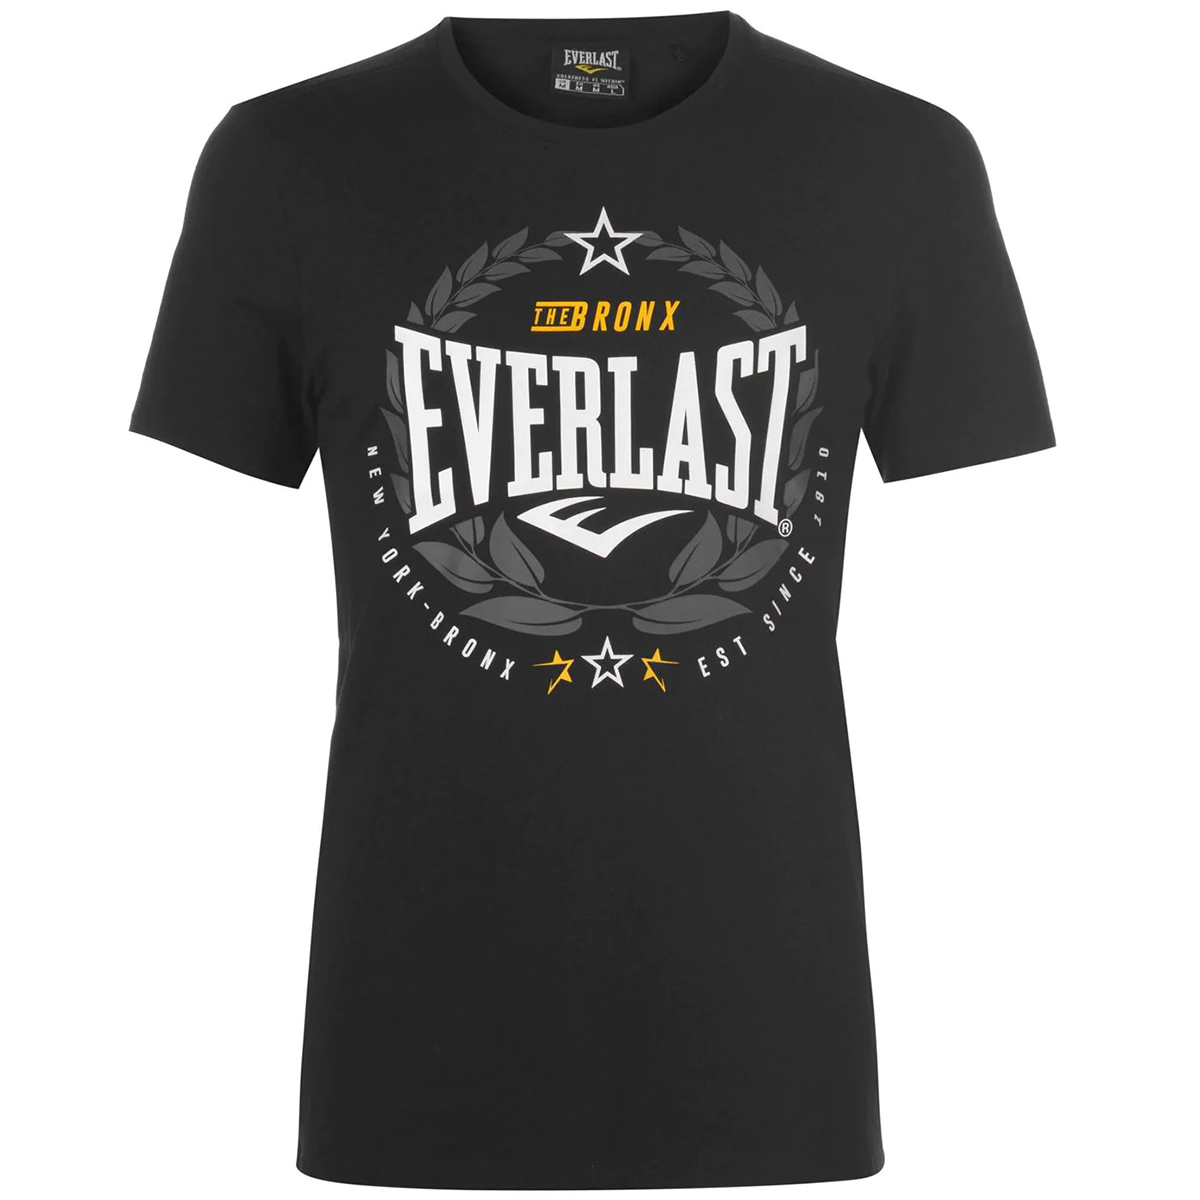 Everlast Men's Laurel Short-Sleeve Tee - Black, S